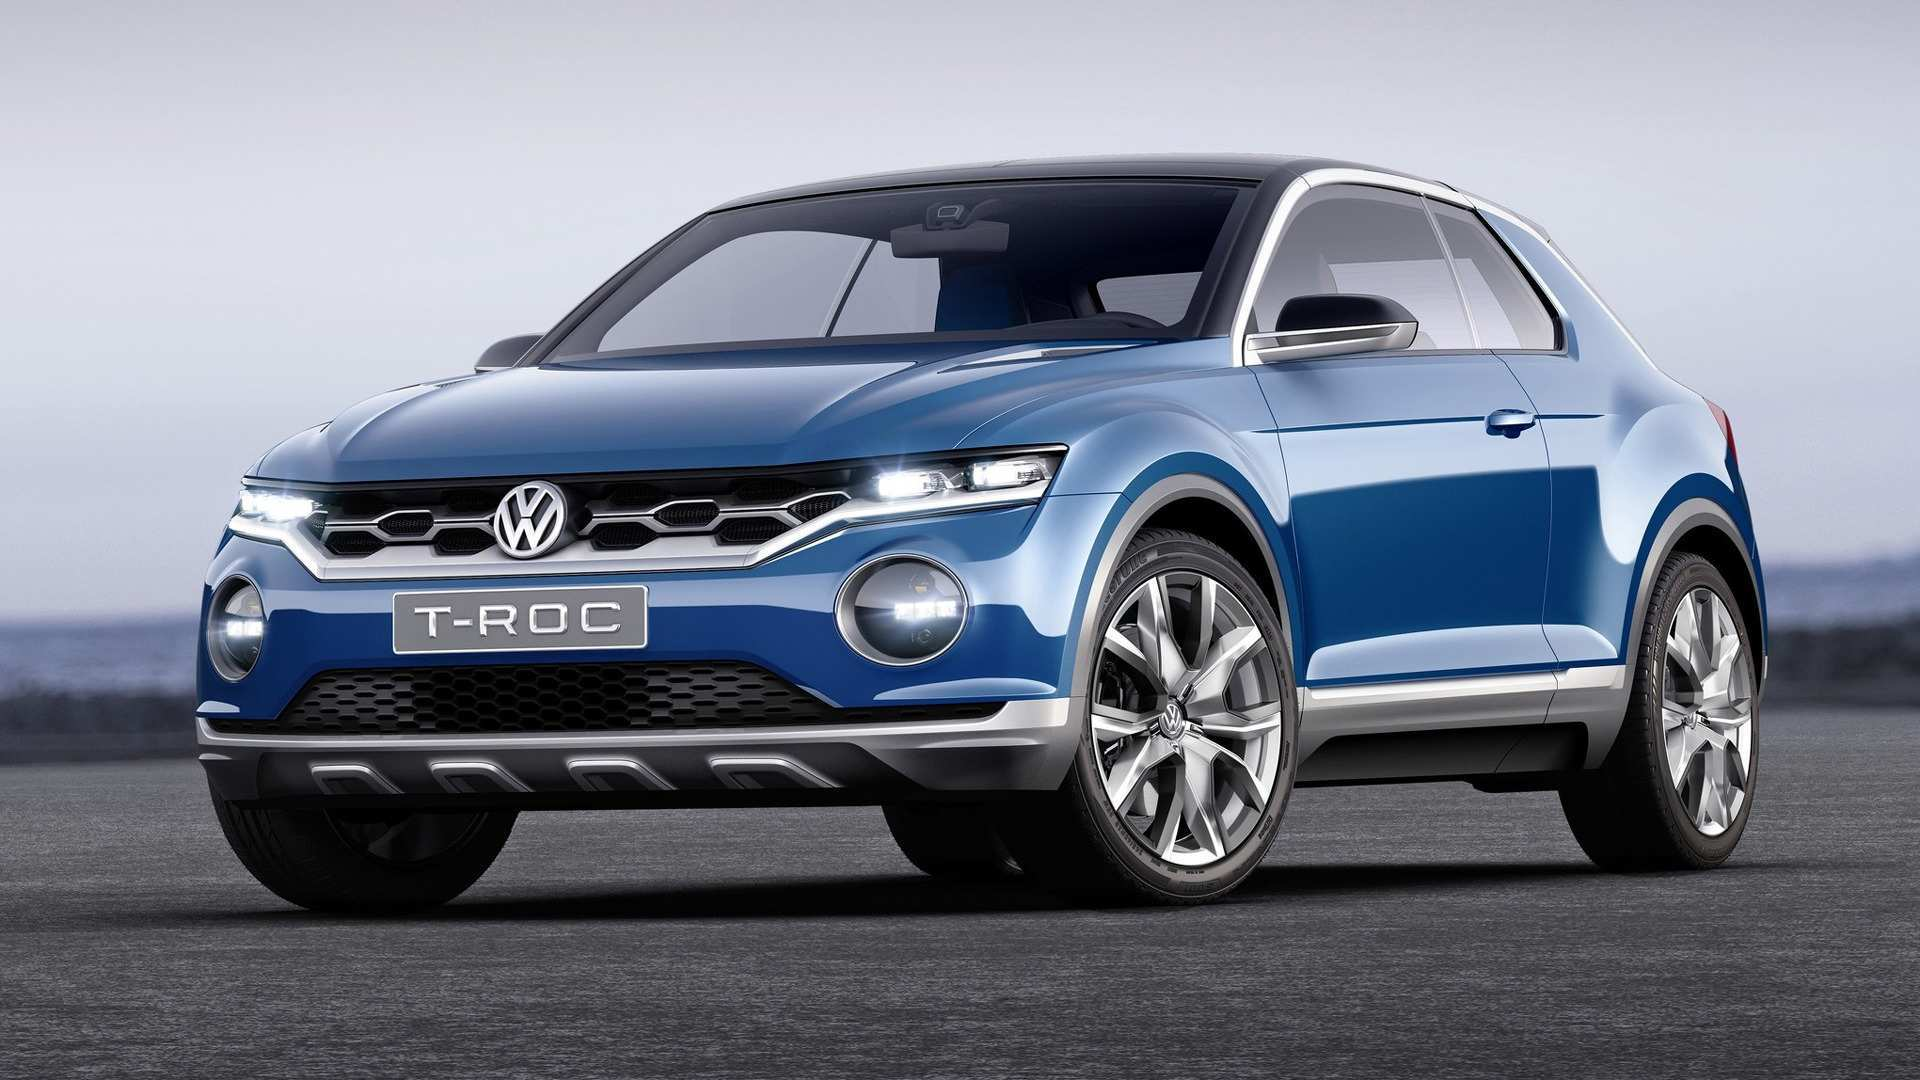 91 Great Crossover Volkswagen 2019 Concept Overview for Crossover Volkswagen 2019 Concept